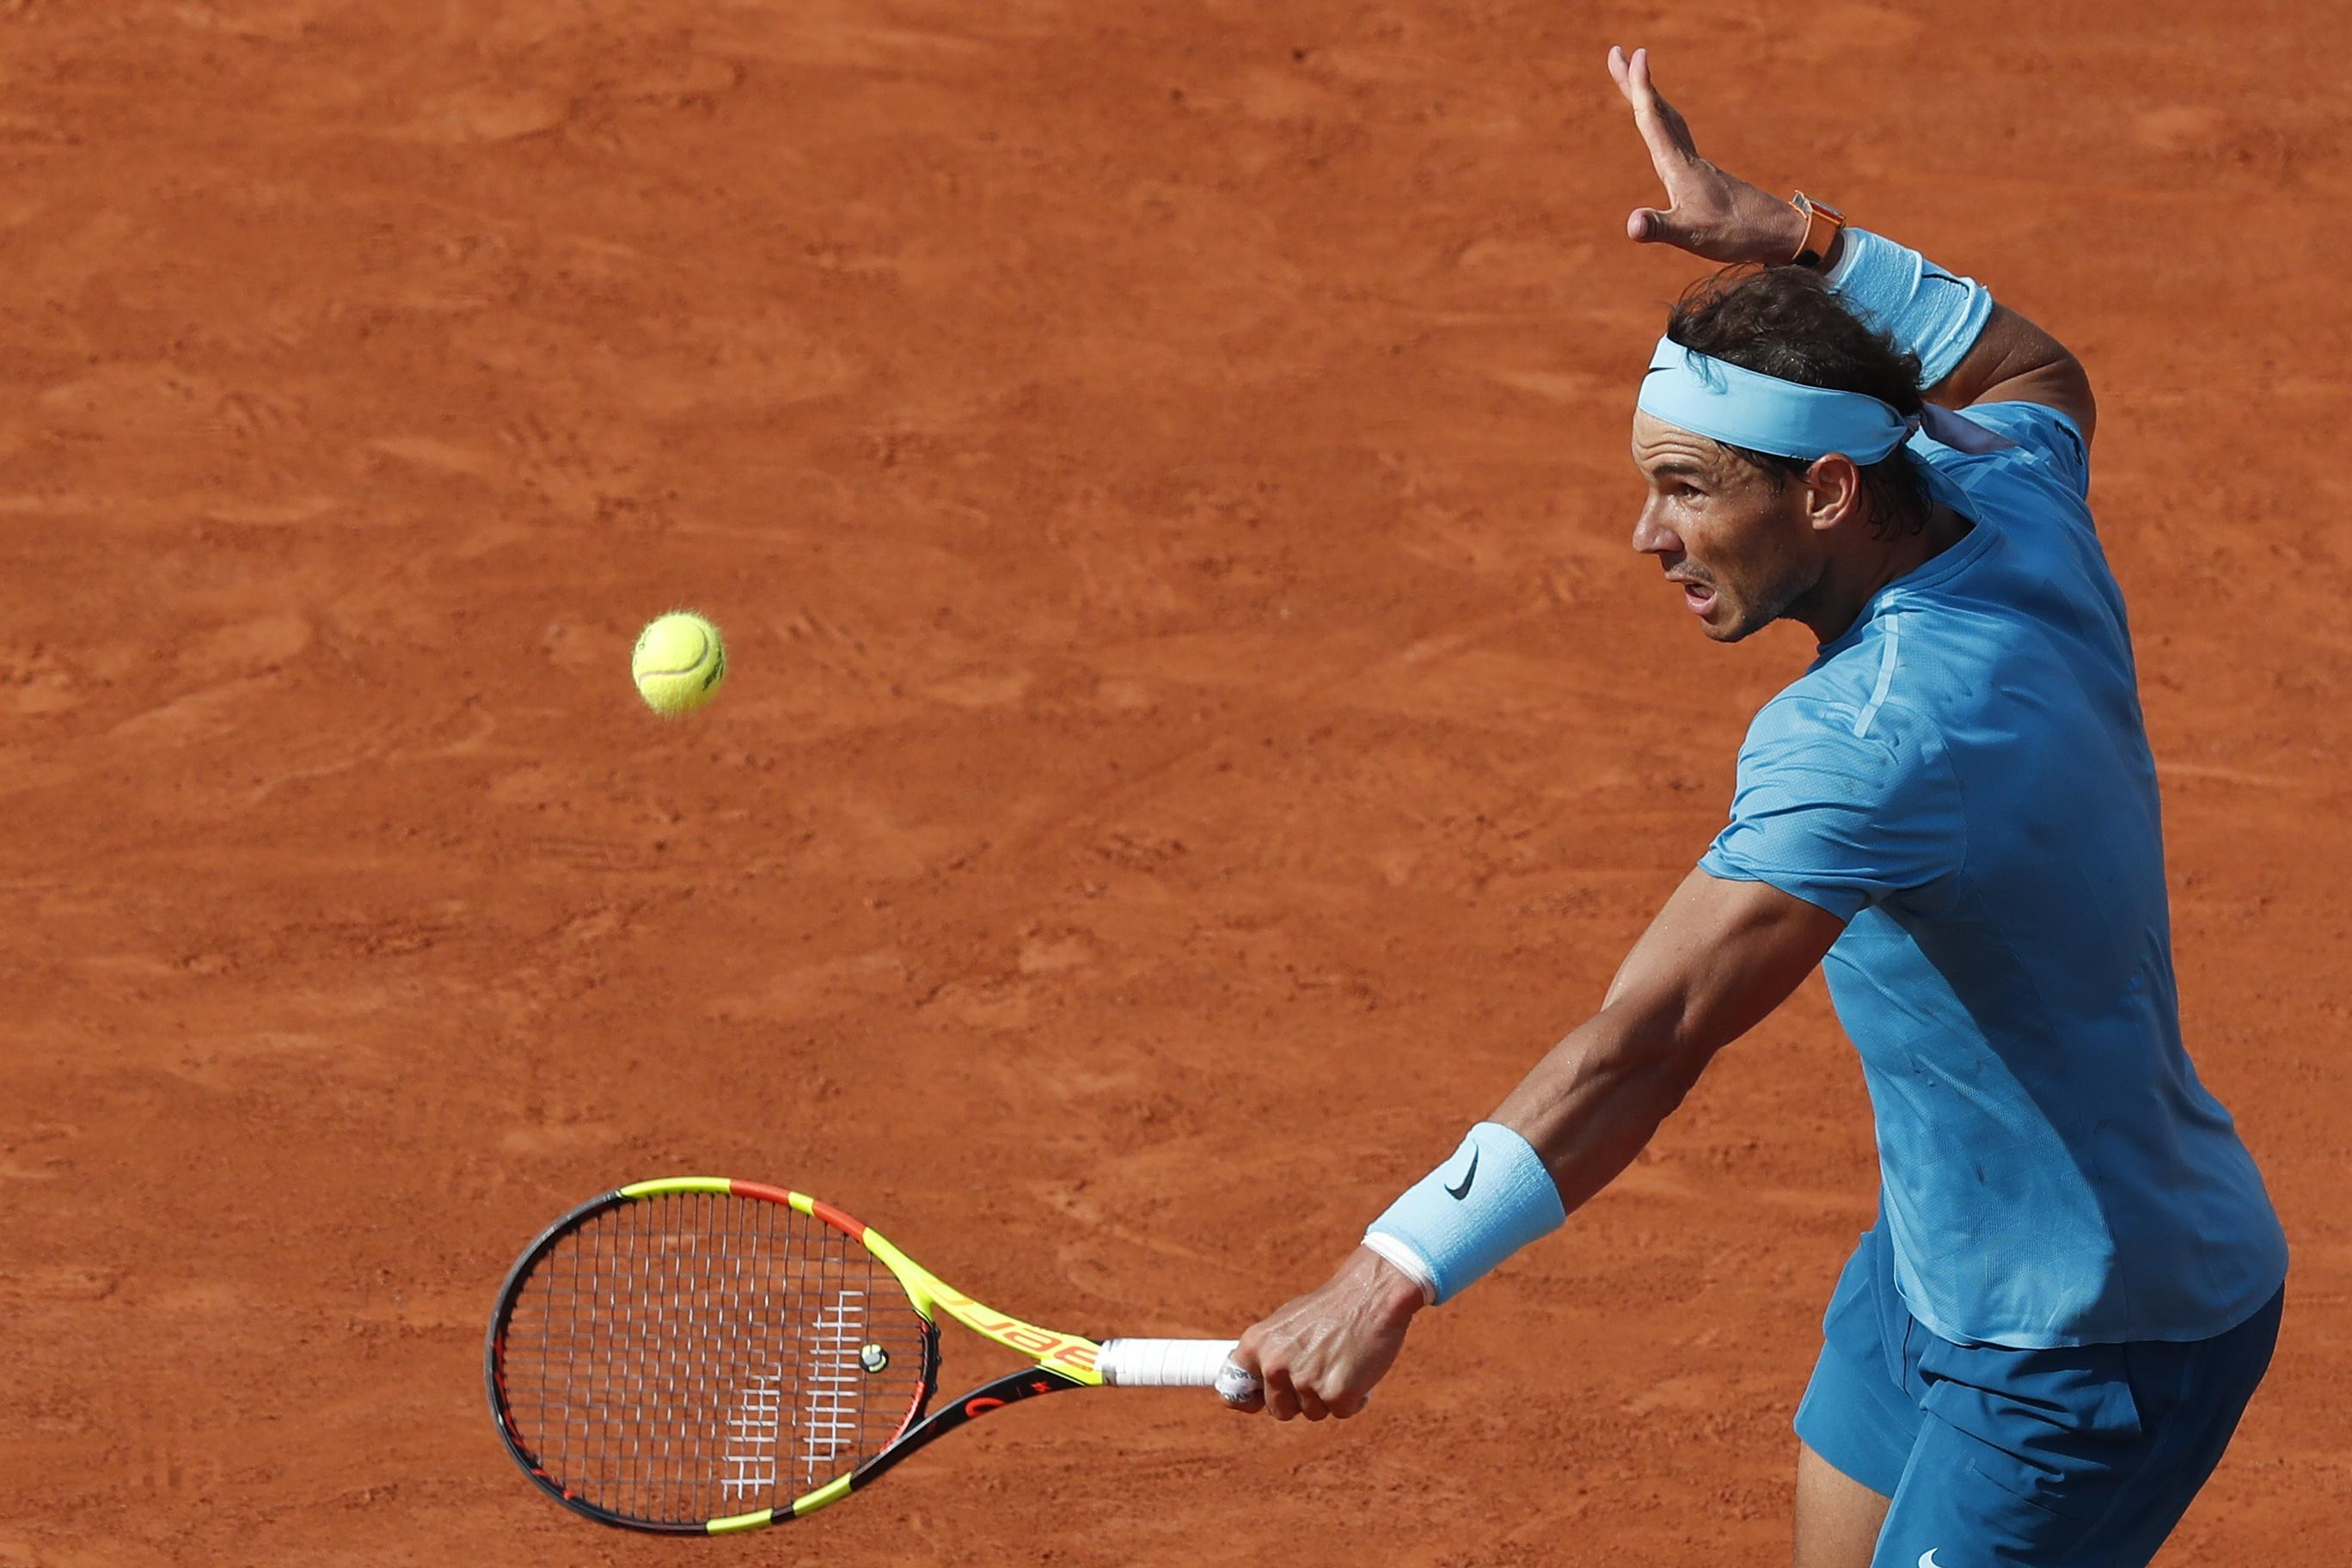 Spain star Nadal beat his Juan Martin Del Potro in straight sets